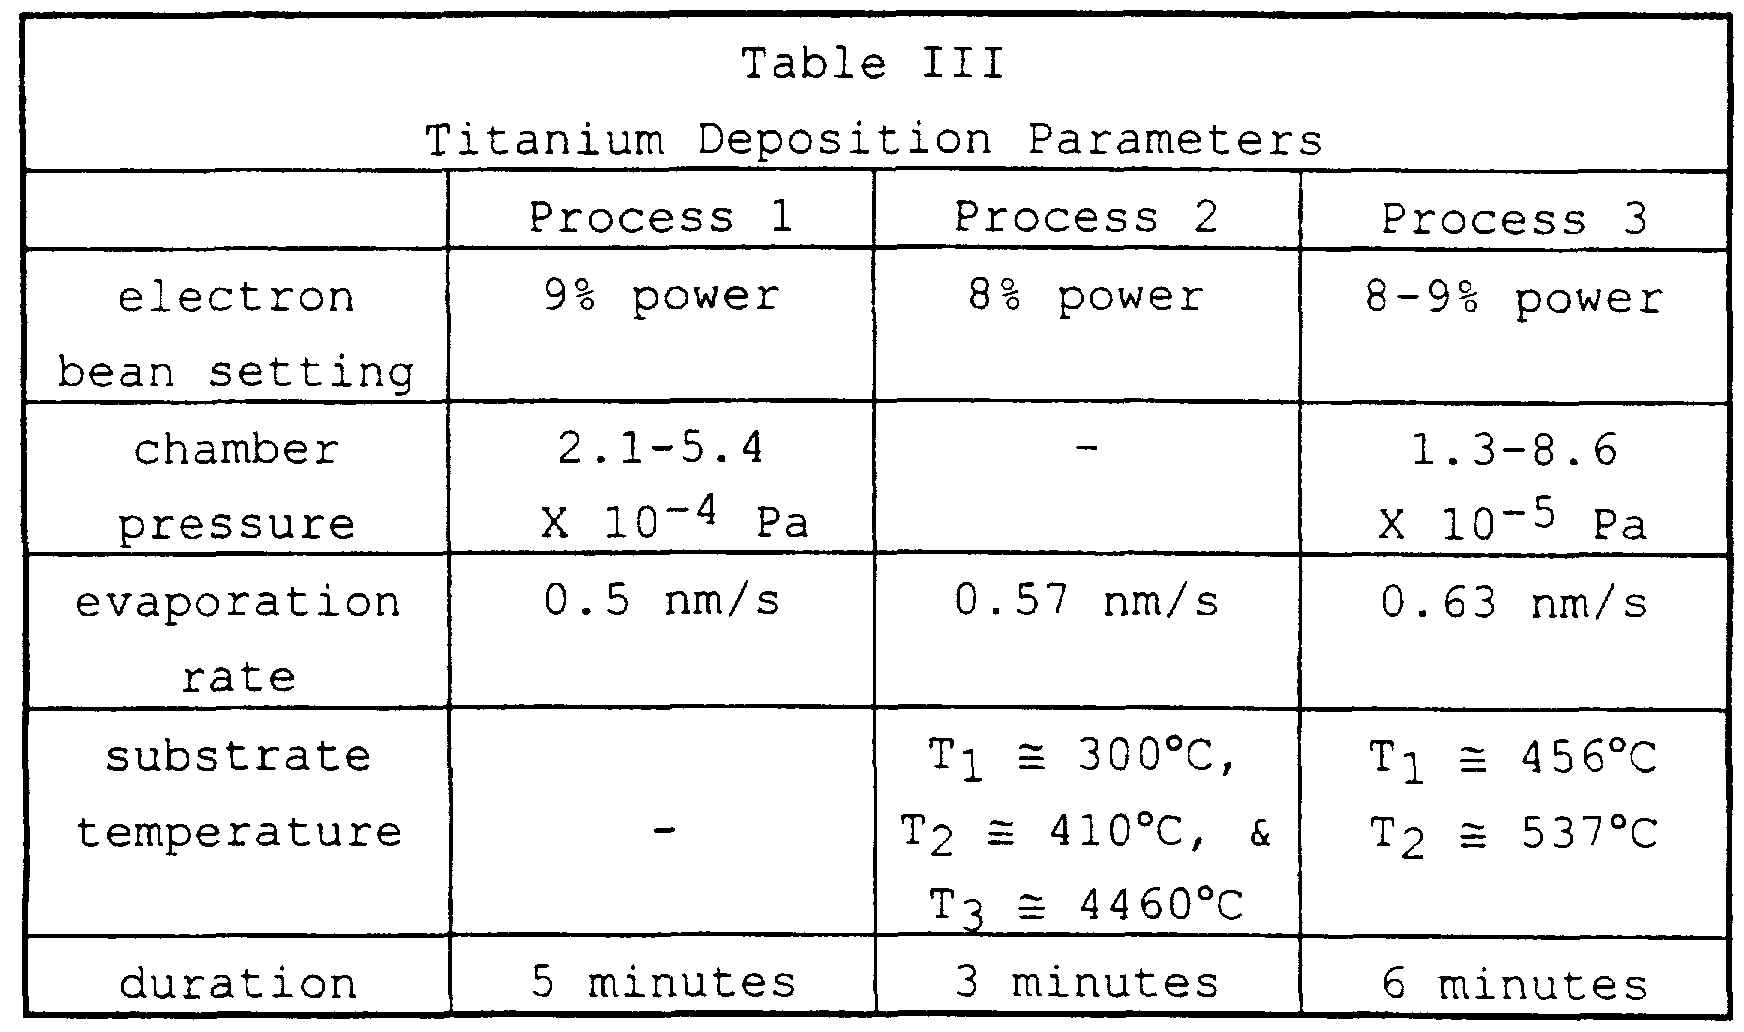 The deposition of the first intermediate layer 6 for the three processes co